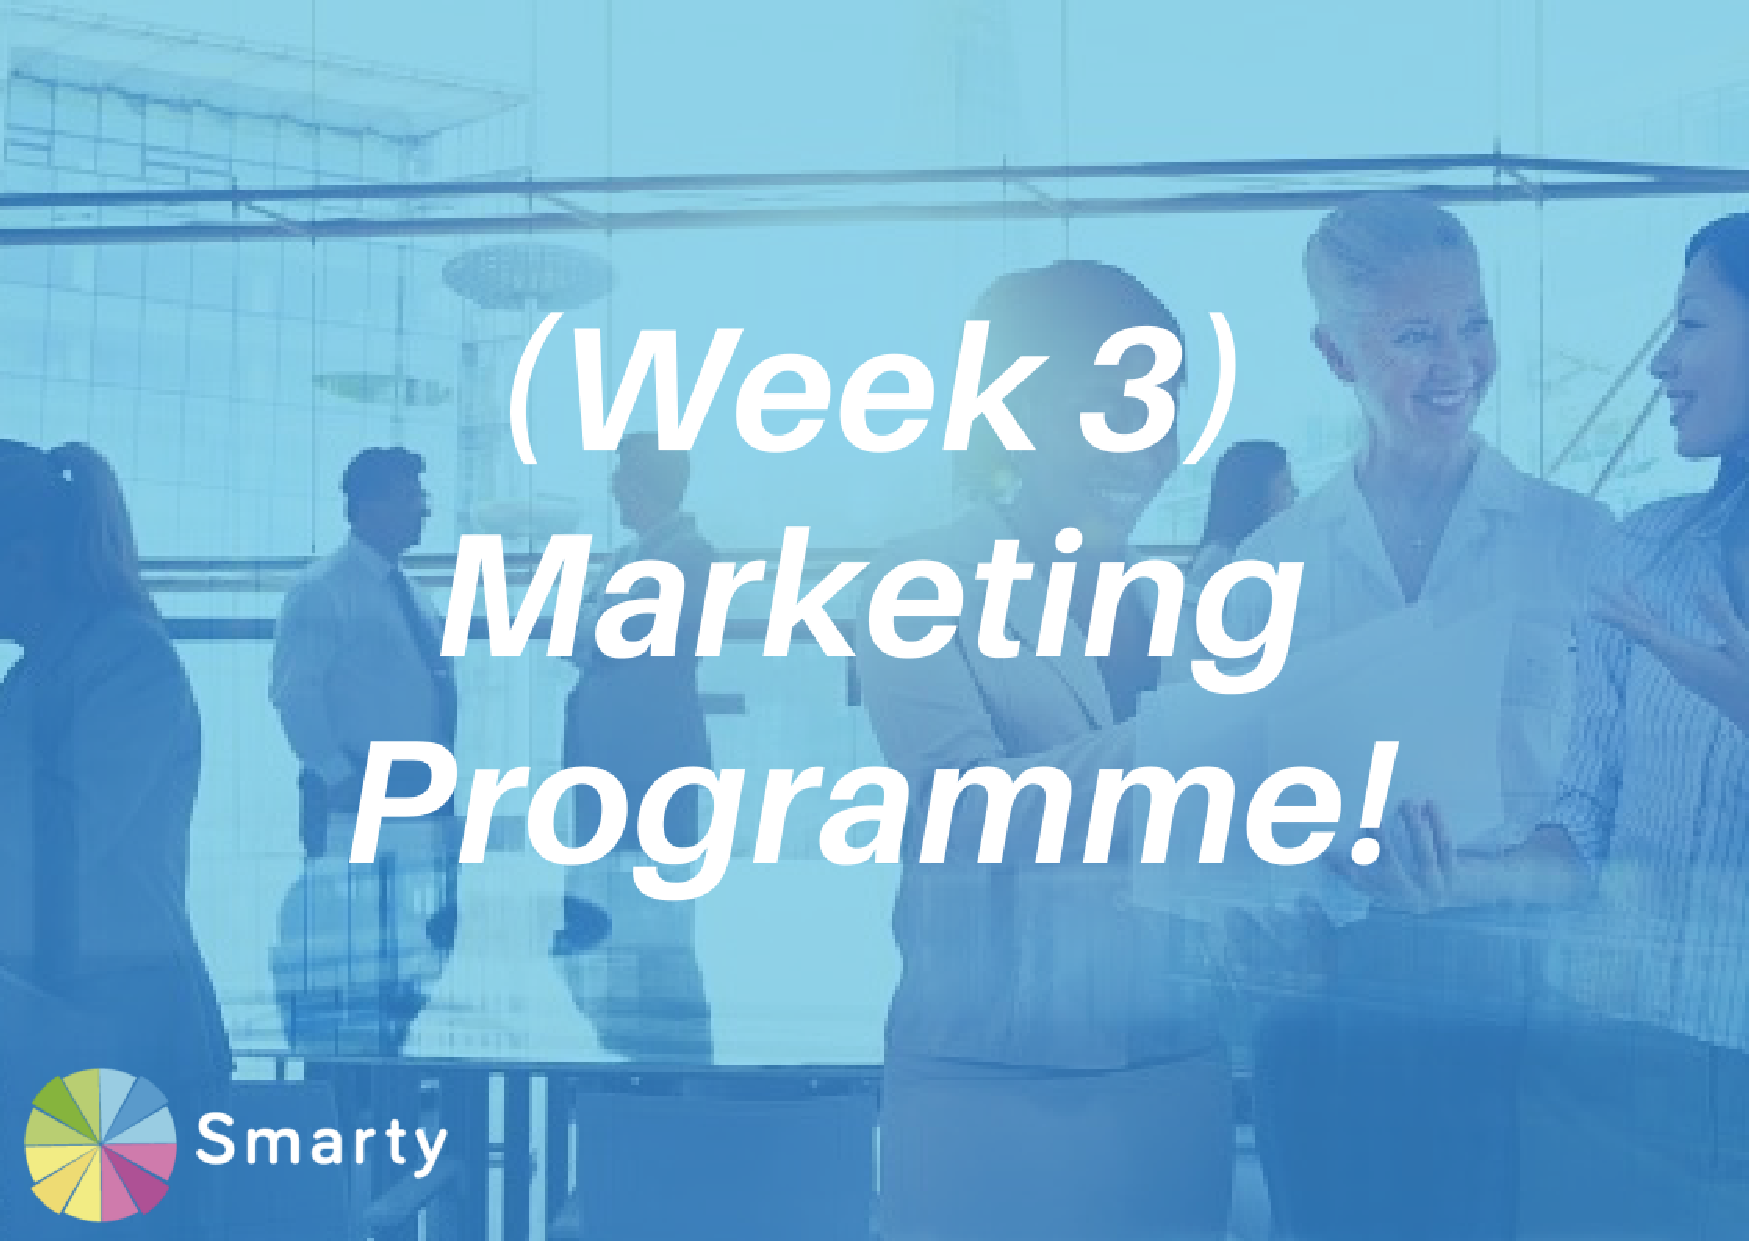 Week 3 Marketing Programme